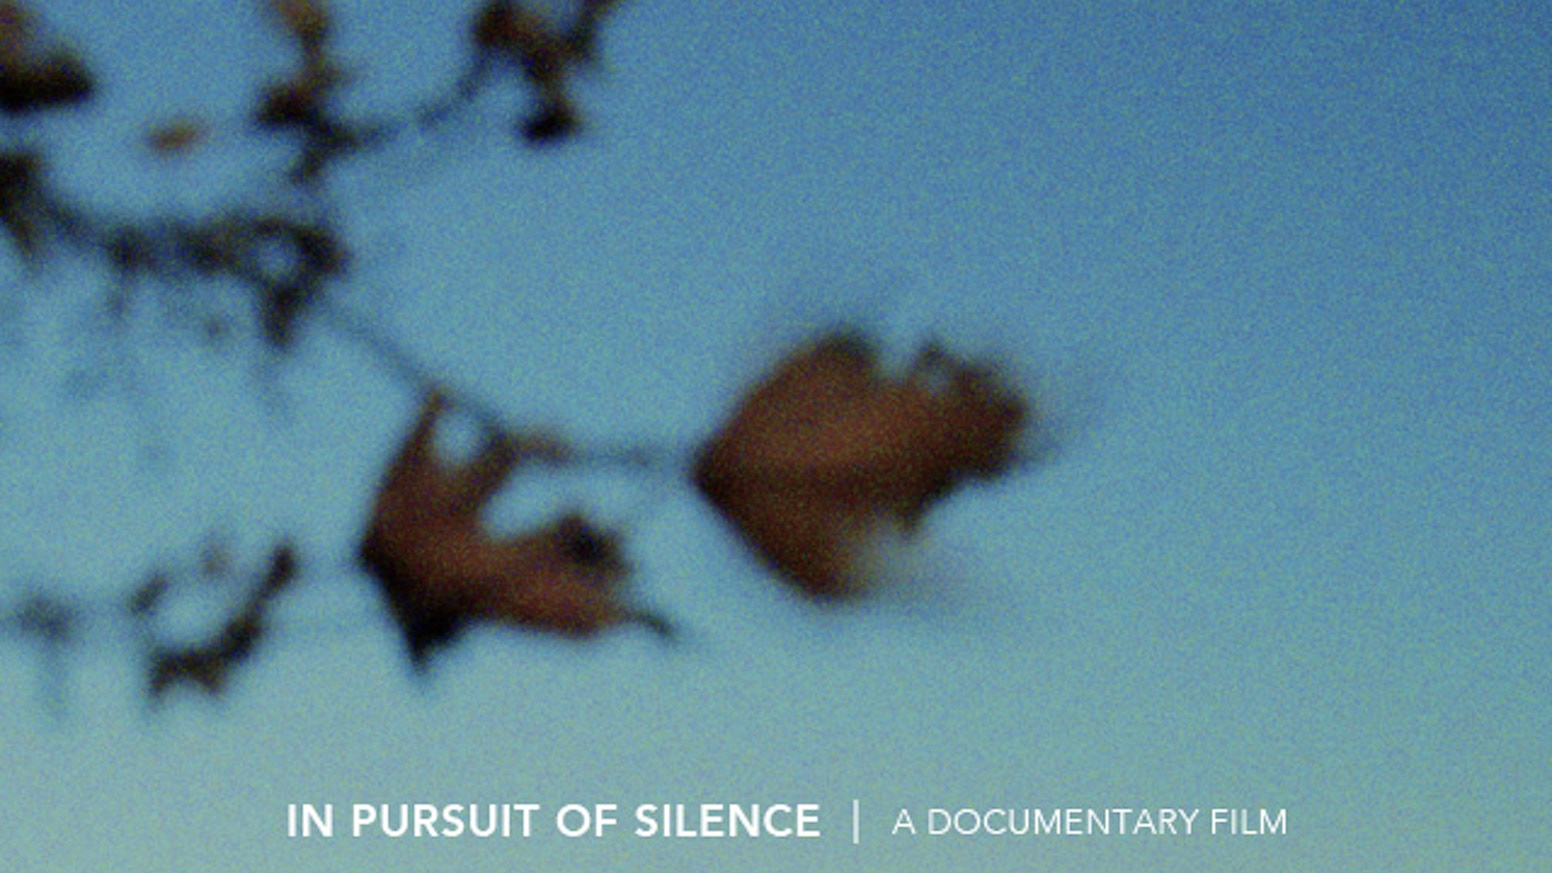 A documentary exploring the value of silence, our relationship with sound, and the implications of living in a noisy world. (name of campaign creator Transcendental Media has changed to Patrick Shen)